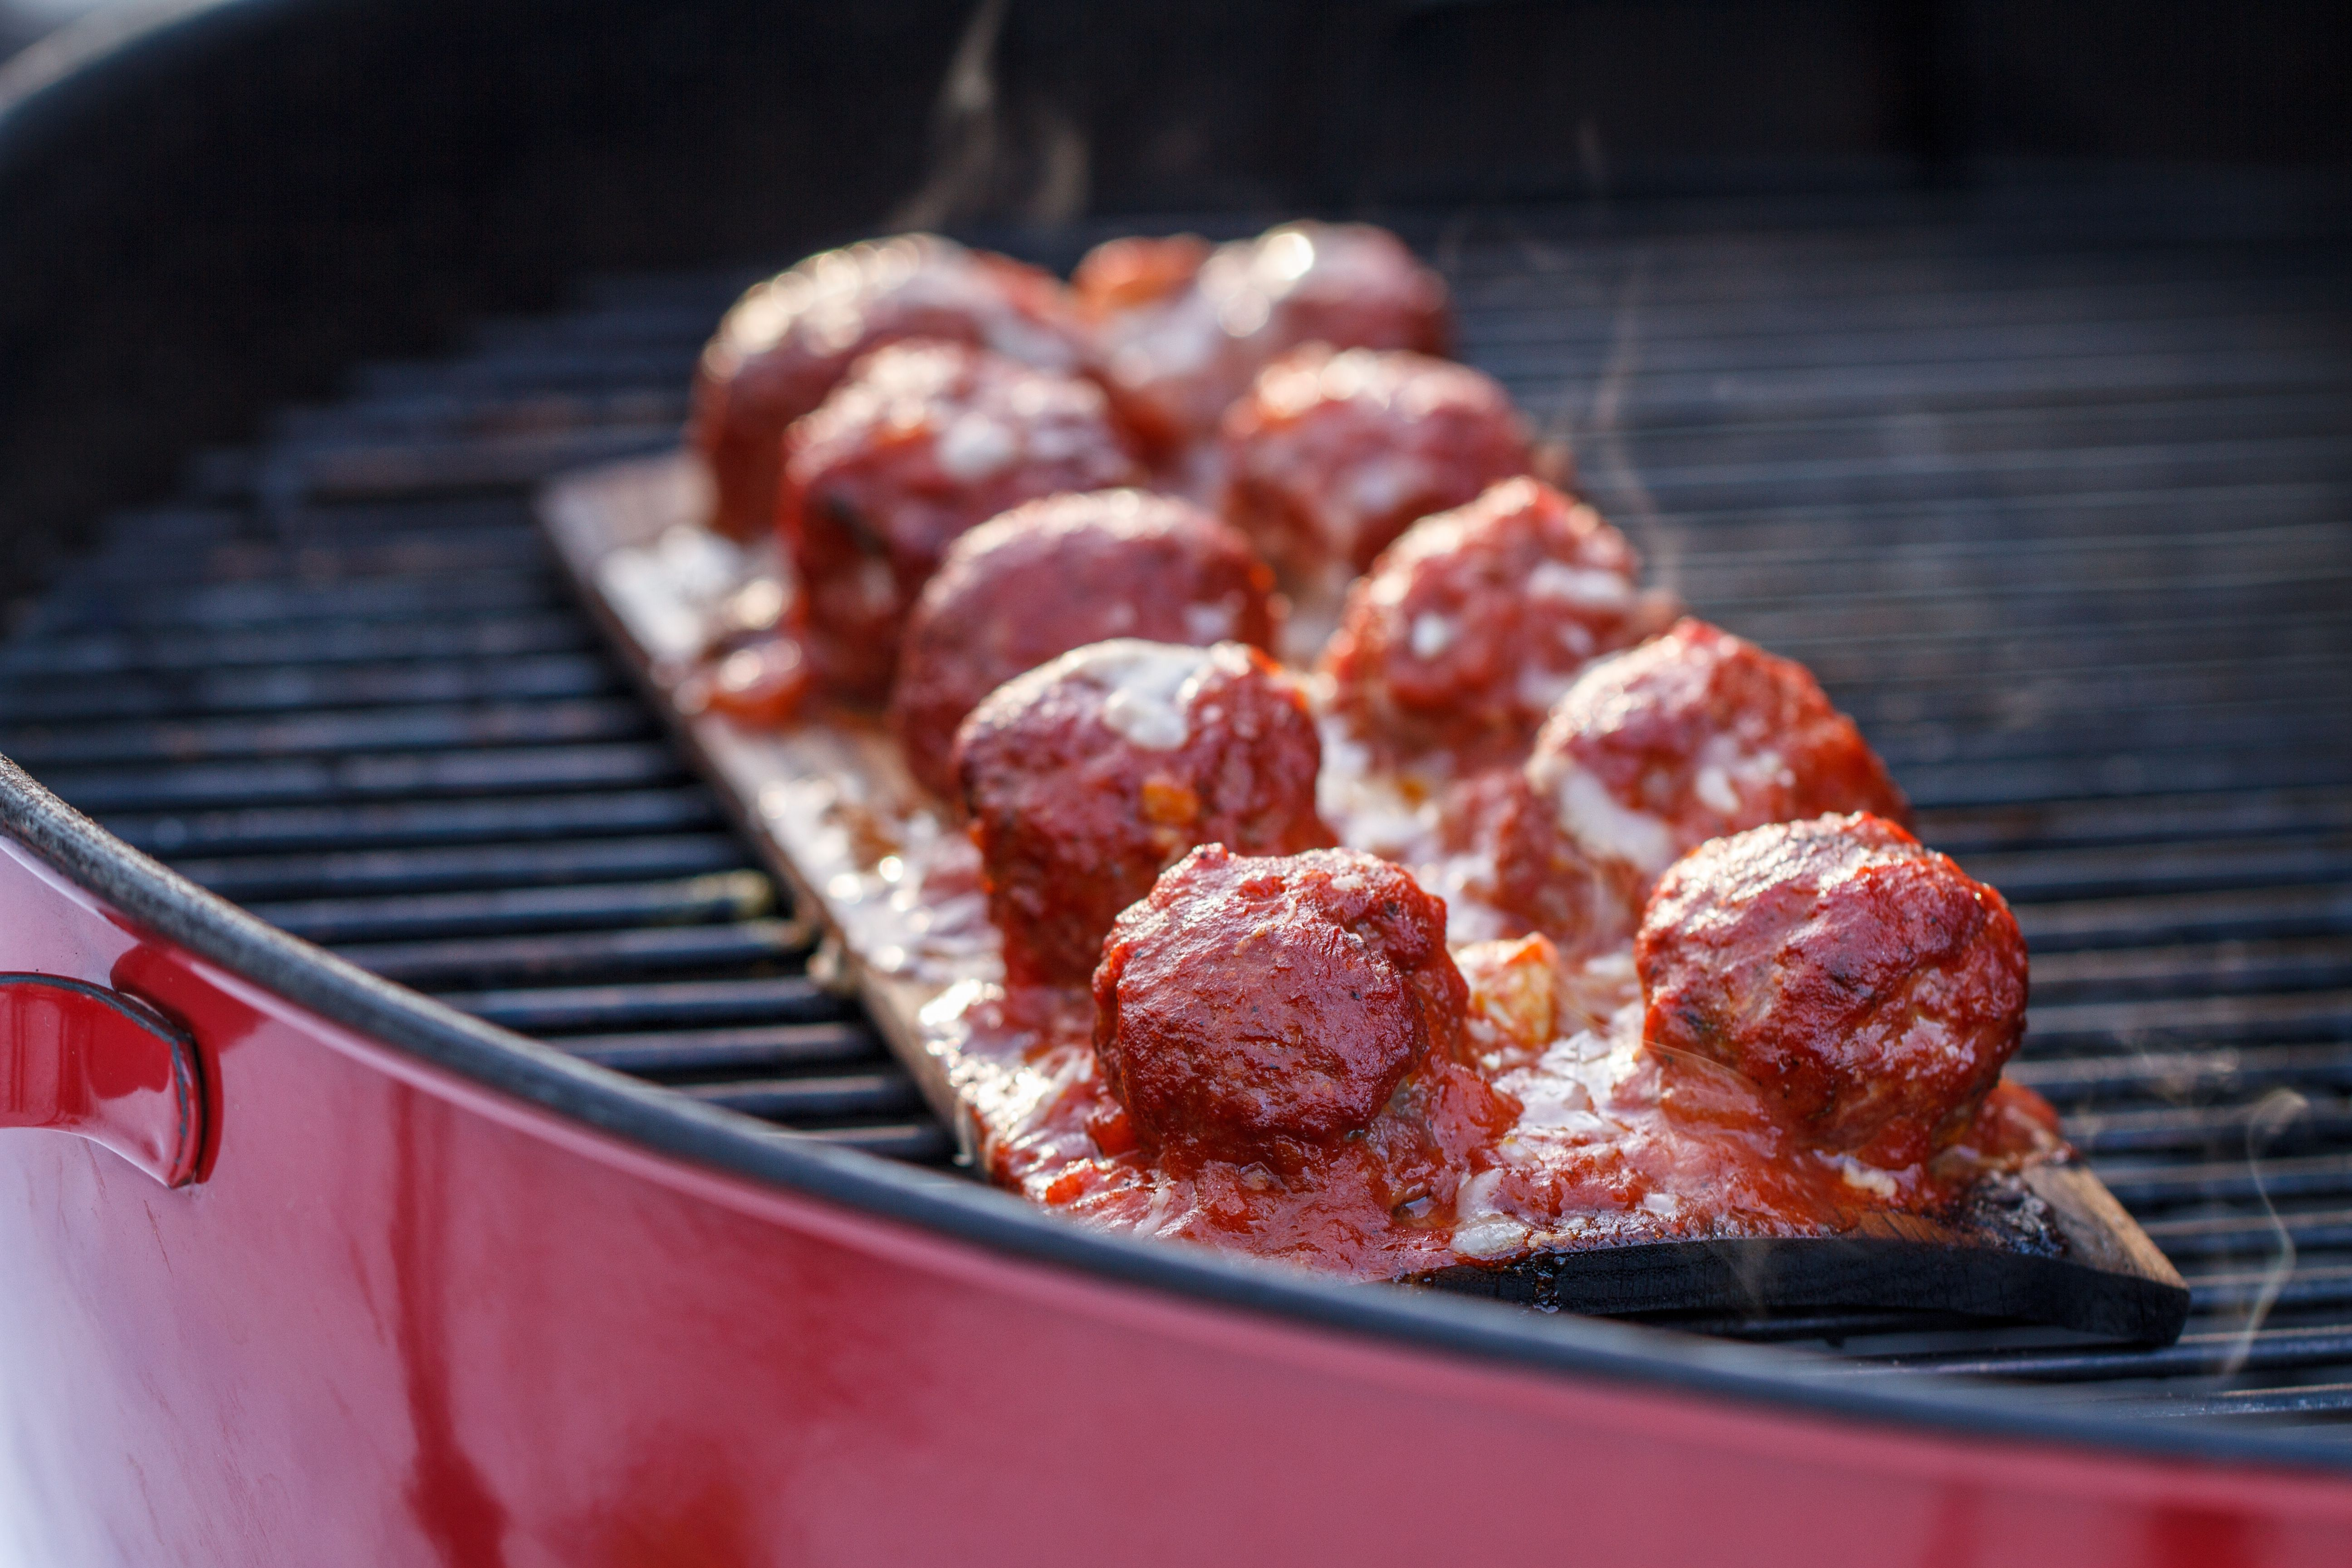 A New Way To Do Meatballs Cedar Planked Meatballs Grilling Inspiration Weber Grills Grilled Turkey Recipes Turkey Recipes Thanksgiving Foodie